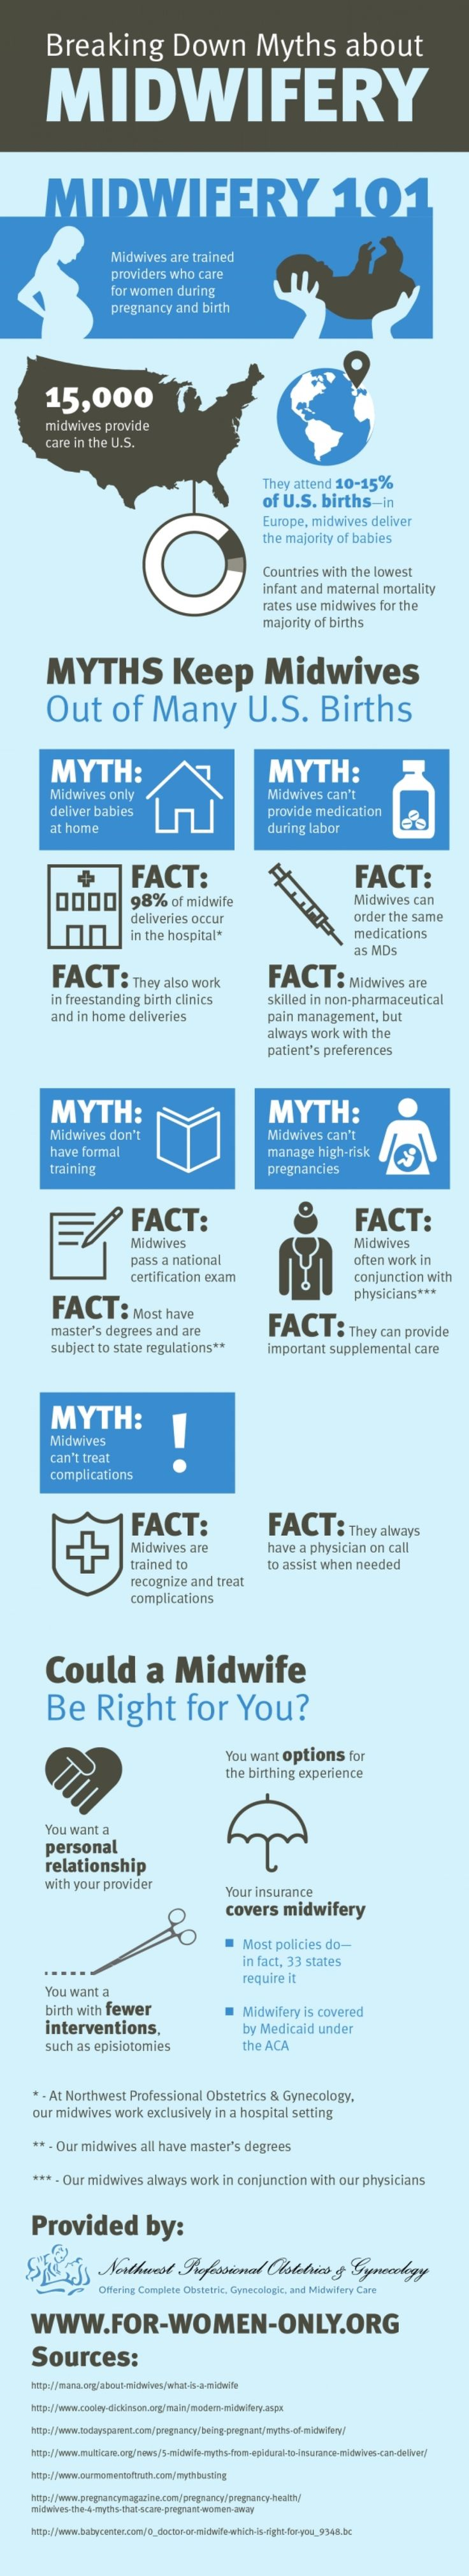 Breaking Down Myths about Midwifery Infographic